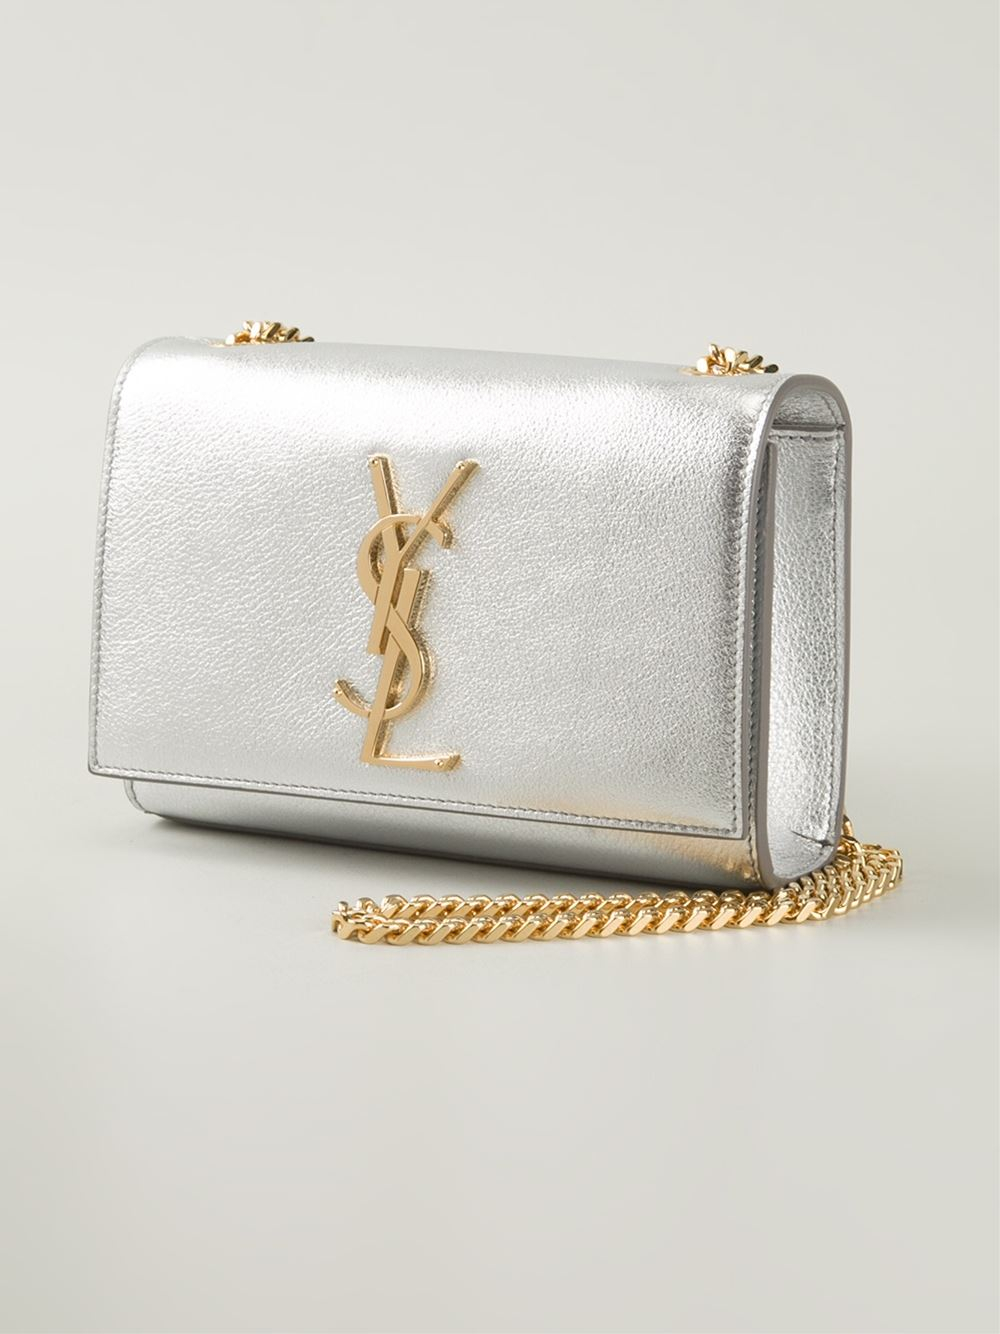 Ysl Crossbody Bag Uk 114